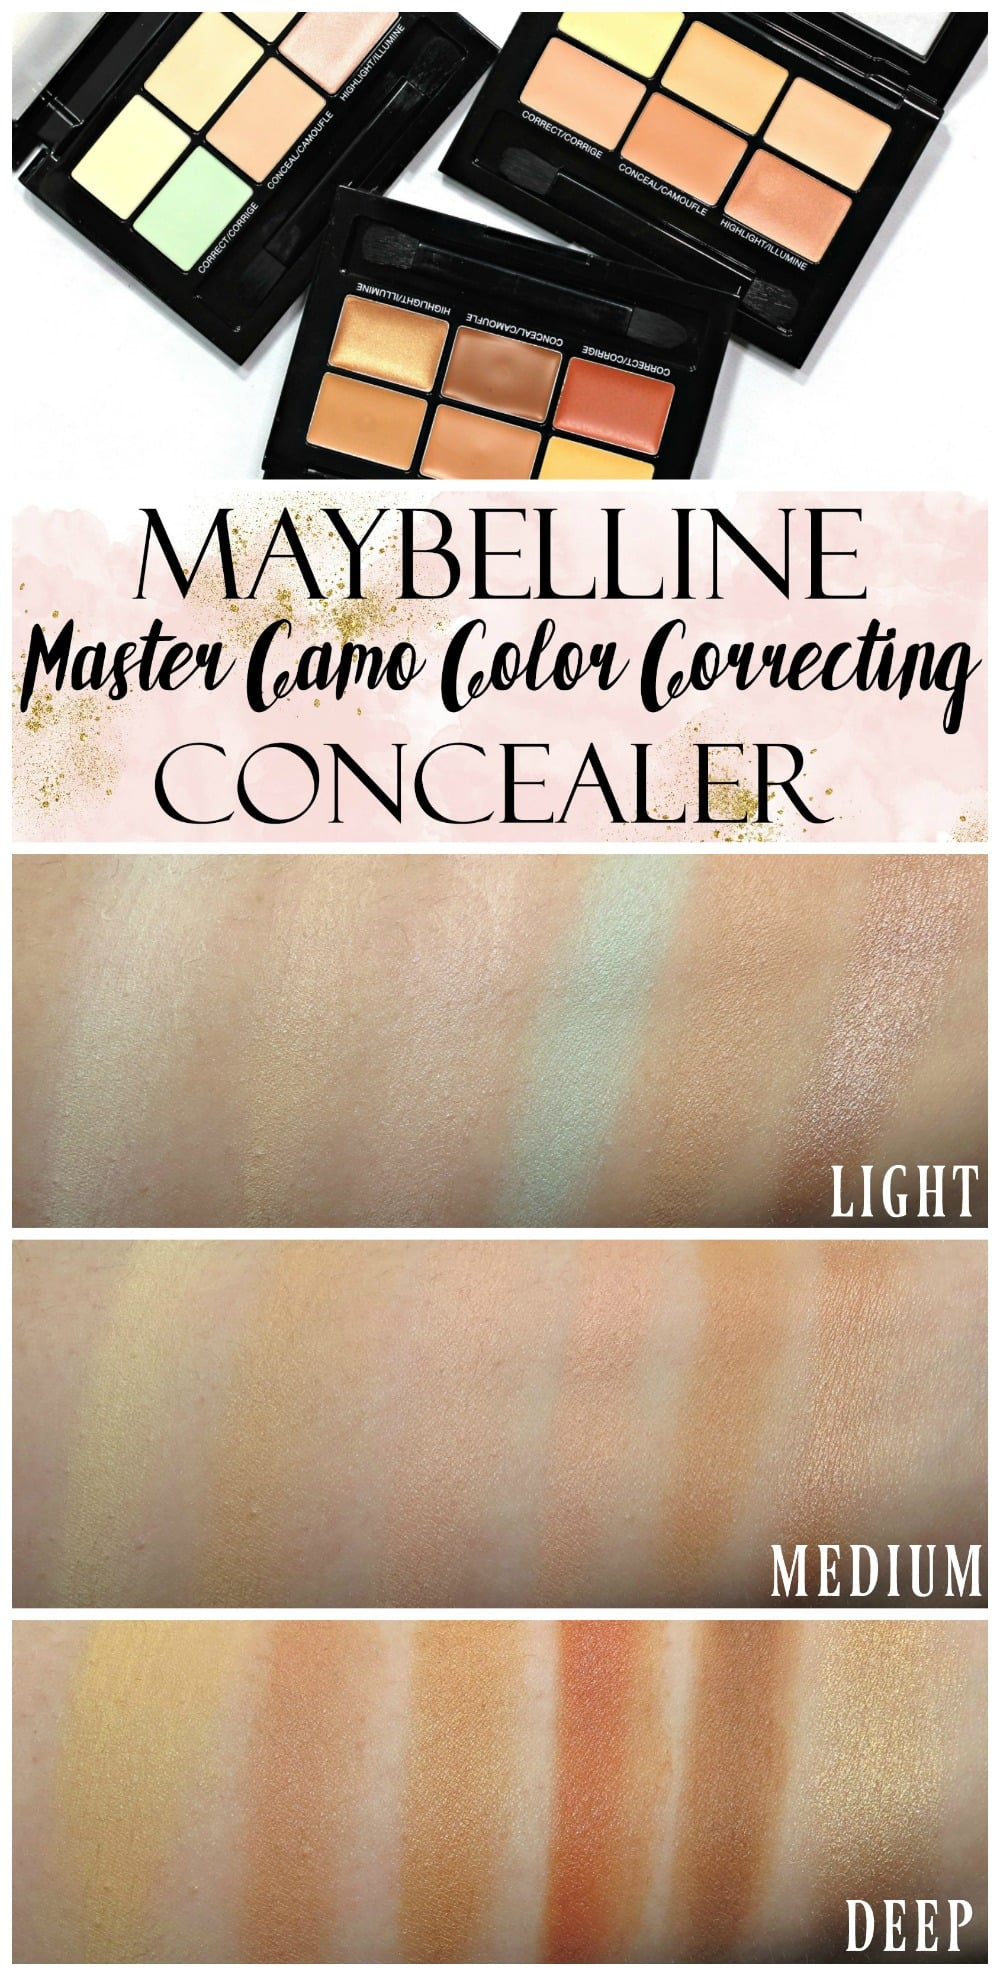 Maybelline Master Camo Color Correcting Concealer swatches review ...